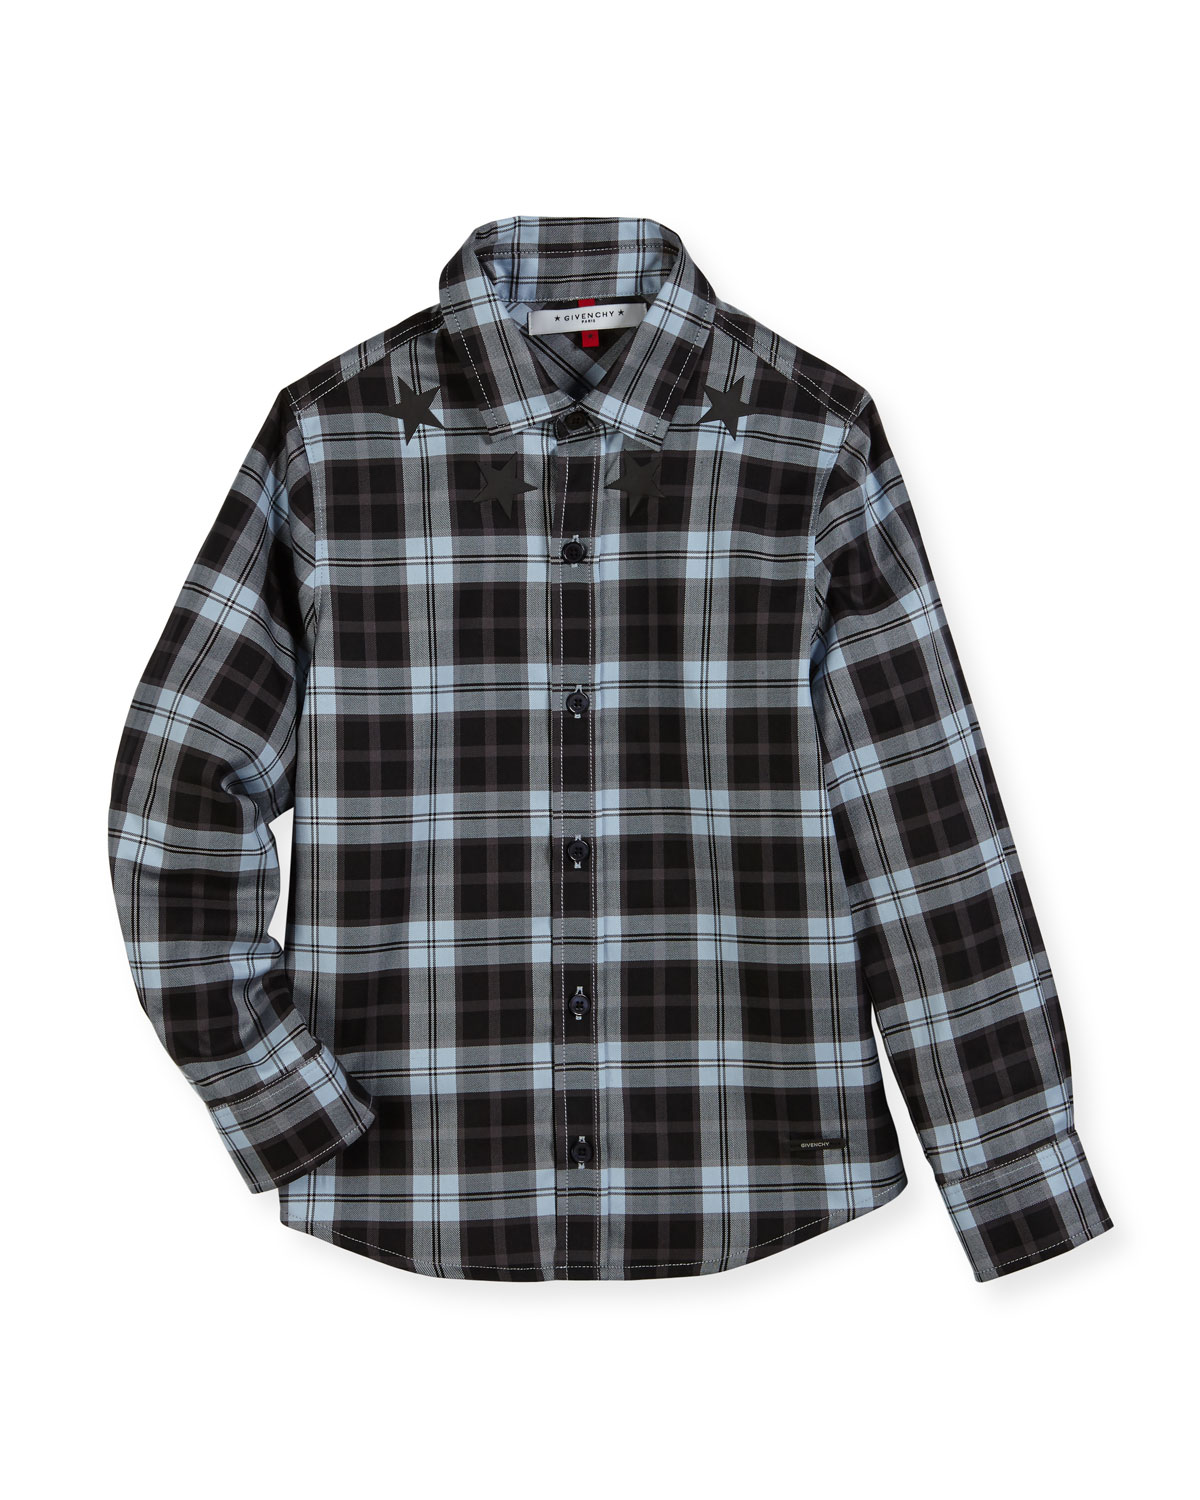 Long-Sleeve Checkered Star Button-Down Shirt, Size 12-14